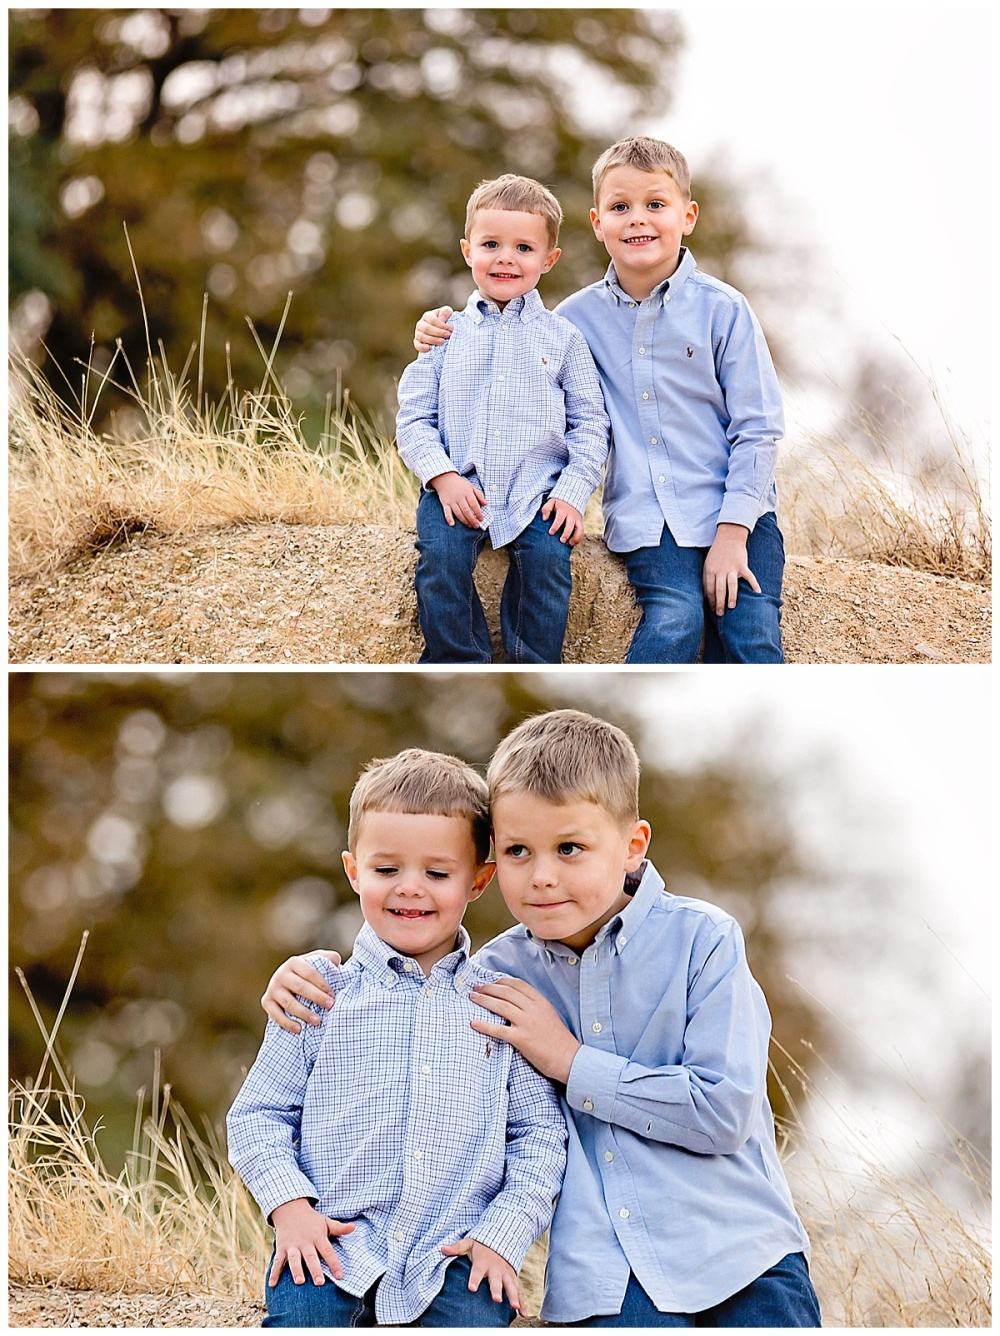 Family-Photographer-La-Vernia-Texas-LV-C-of-C-Hall-Fall-Photos-Brothers-Carly-Barton-Photography_0010.jpg